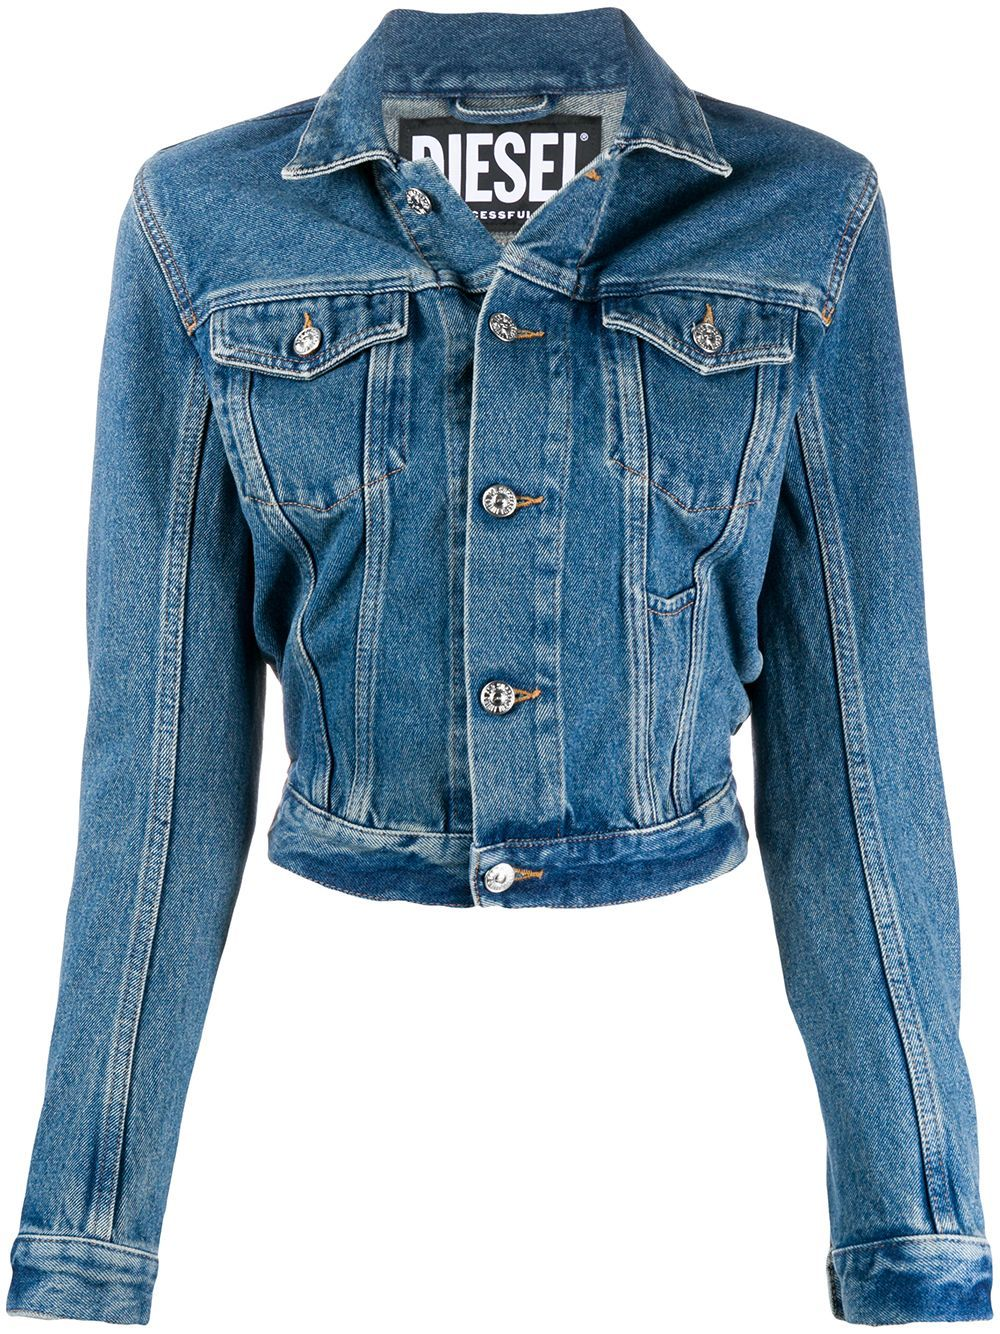 Diesel Fitted Denim Jacket Farfetch Fitted Denim Jacket Jackets Denim Jacket [ 1334 x 1000 Pixel ]